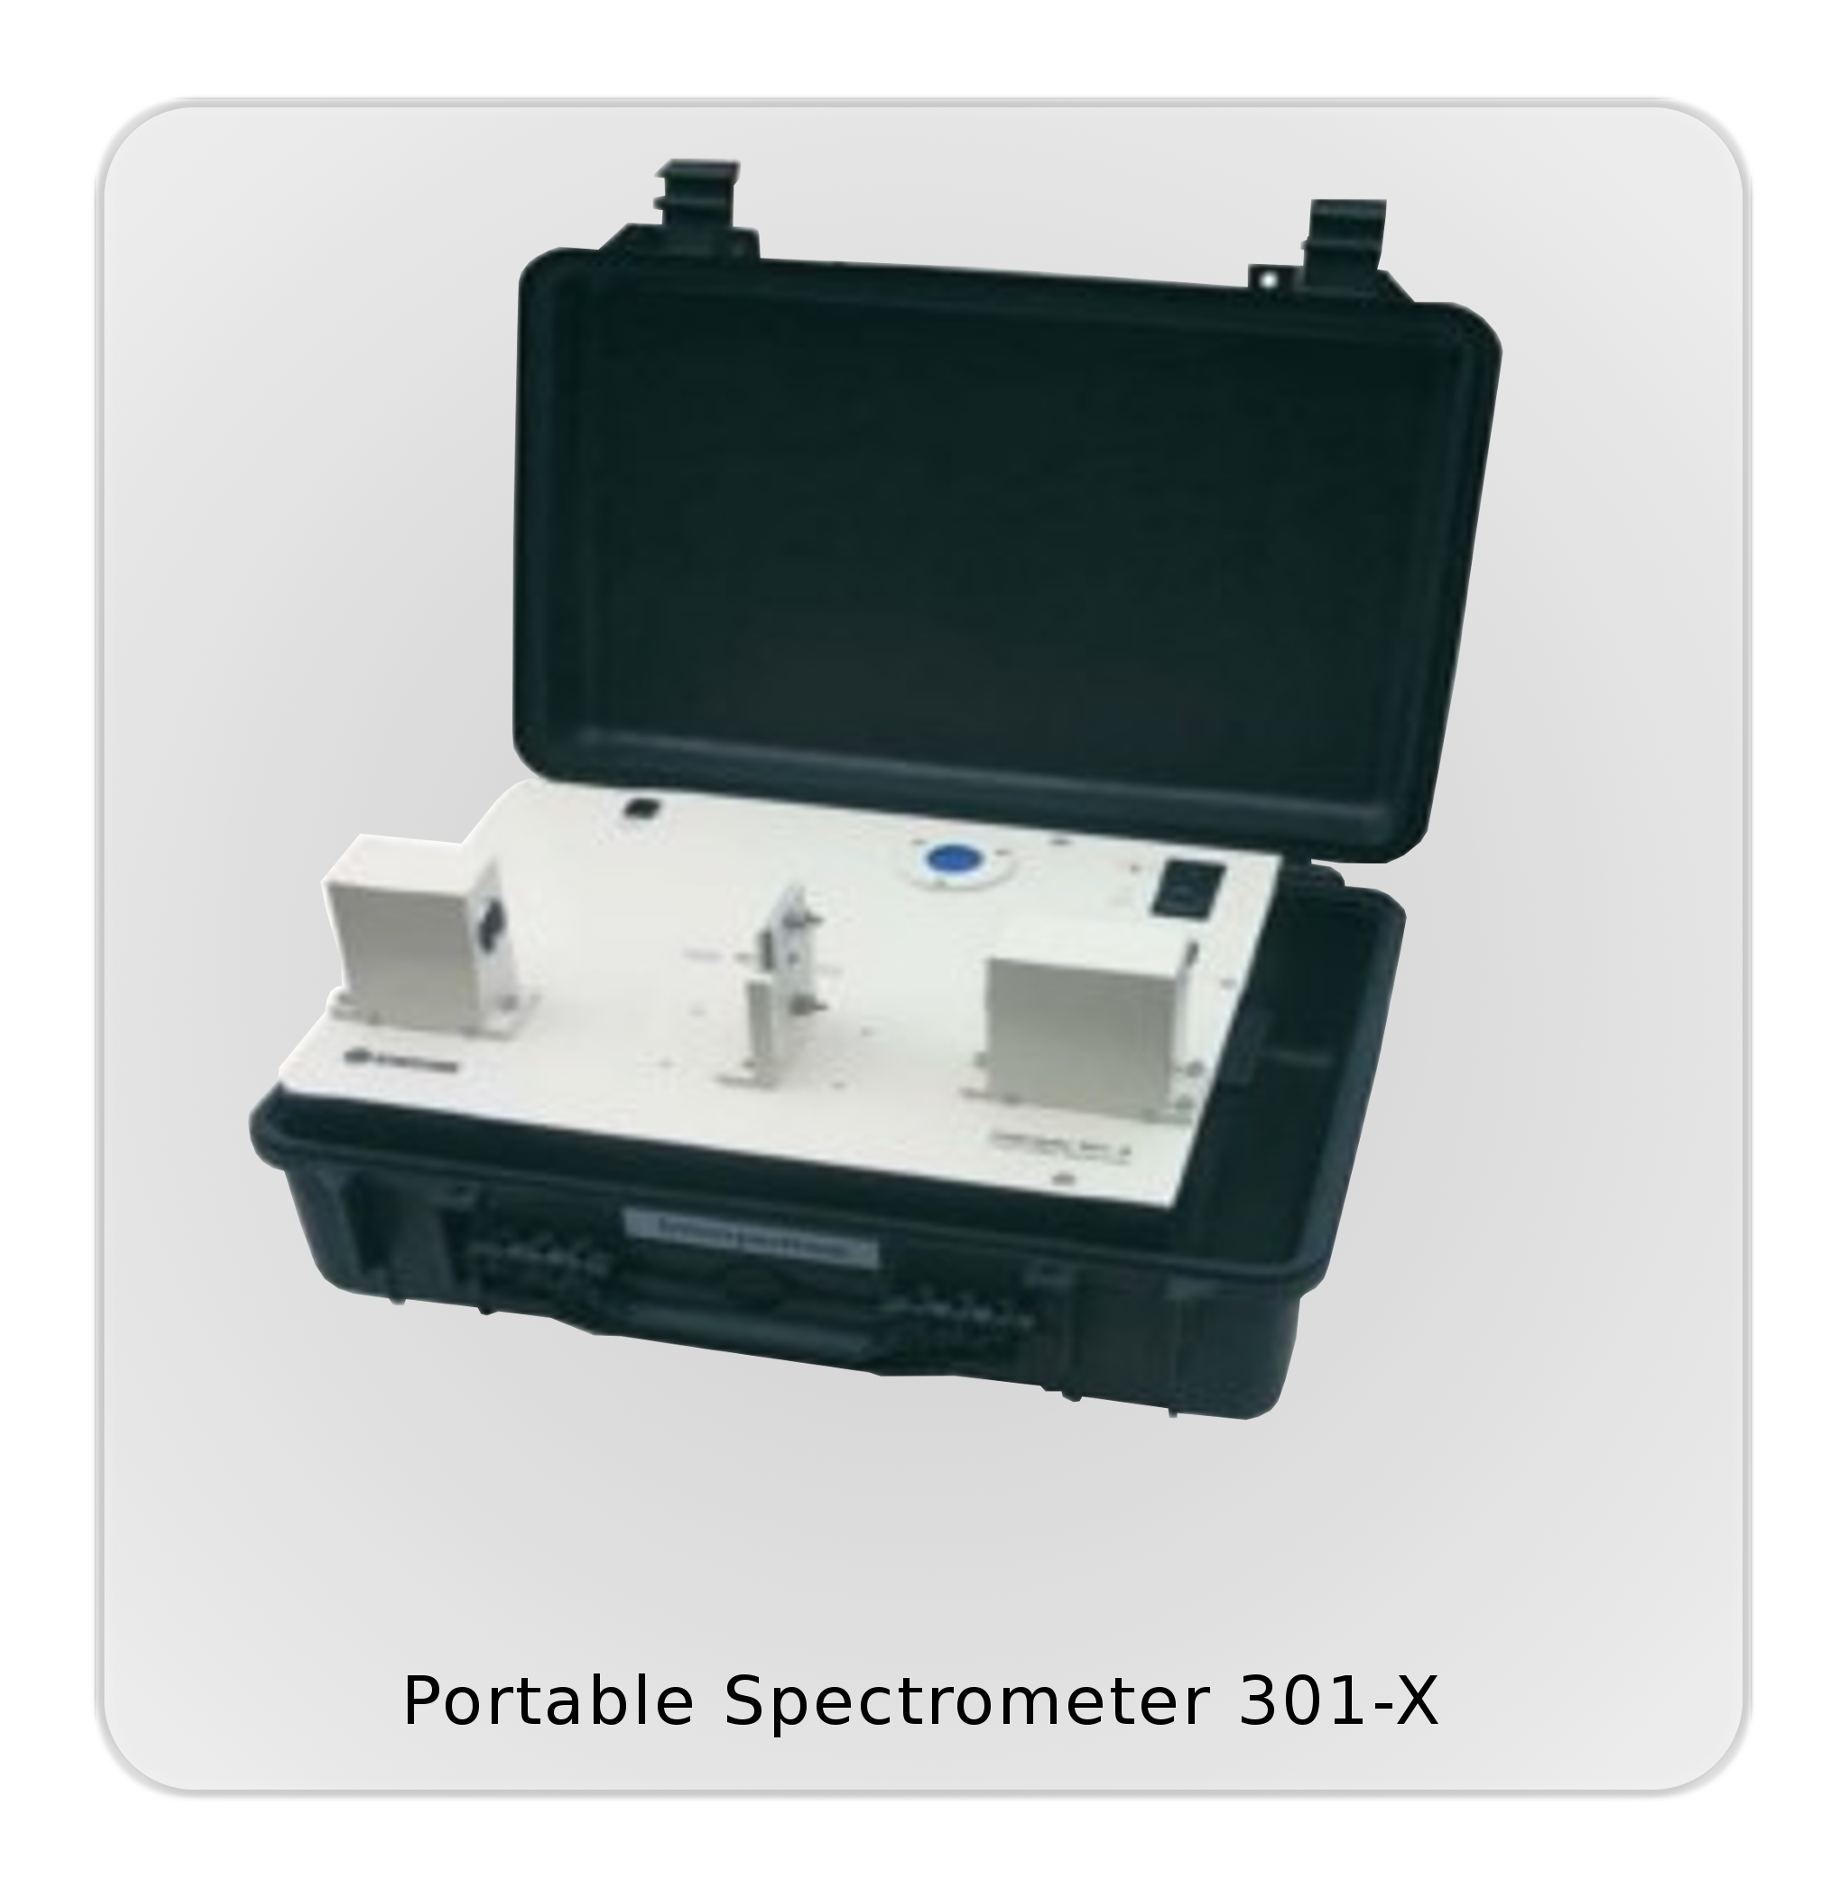 kassay-ram2000-spectrometers-products-lab-spectrometers-portable-spectrometer-301-x